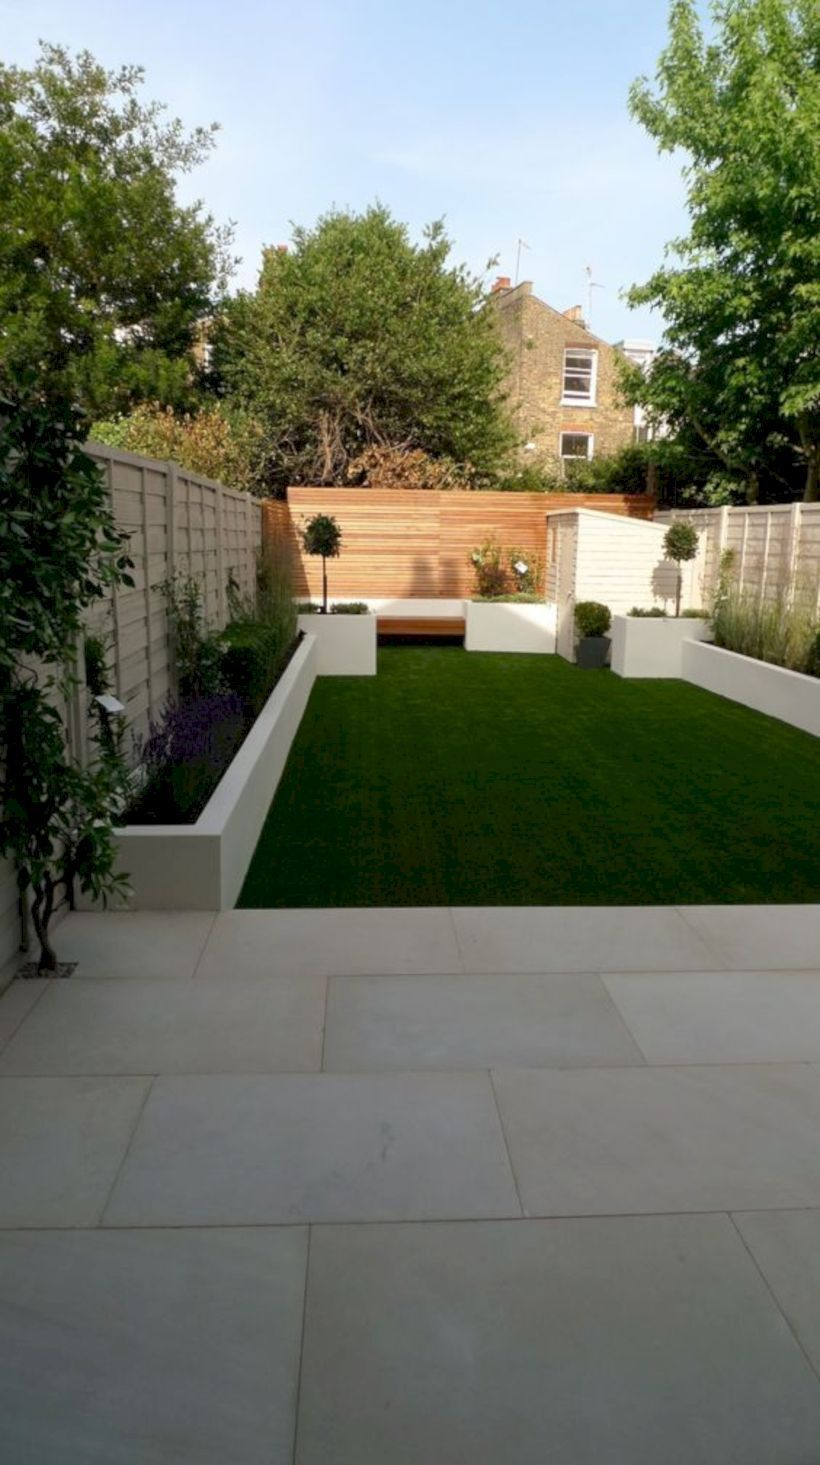 52 Latest Small Courtyard Garden Design Ideas For Your House Best Picture For Garden Design In 2020 Back Garden Design Minimalist Garden Small Courtyard Gardens